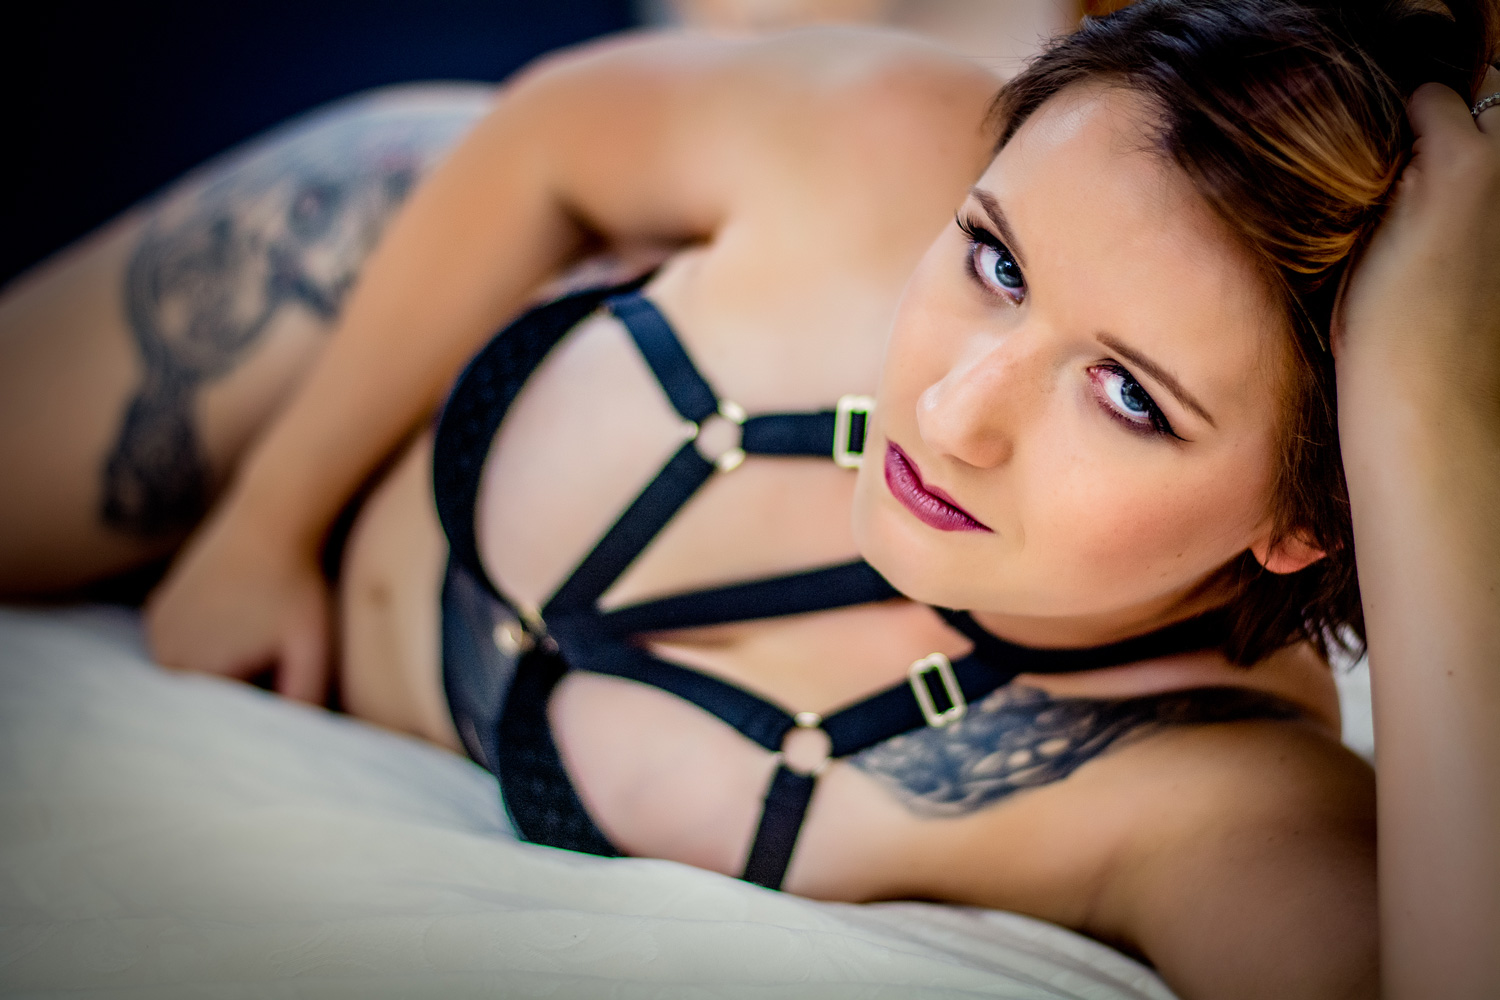 Sexy boudoir images with femininity by Cairns Photographer Catherine Coombs